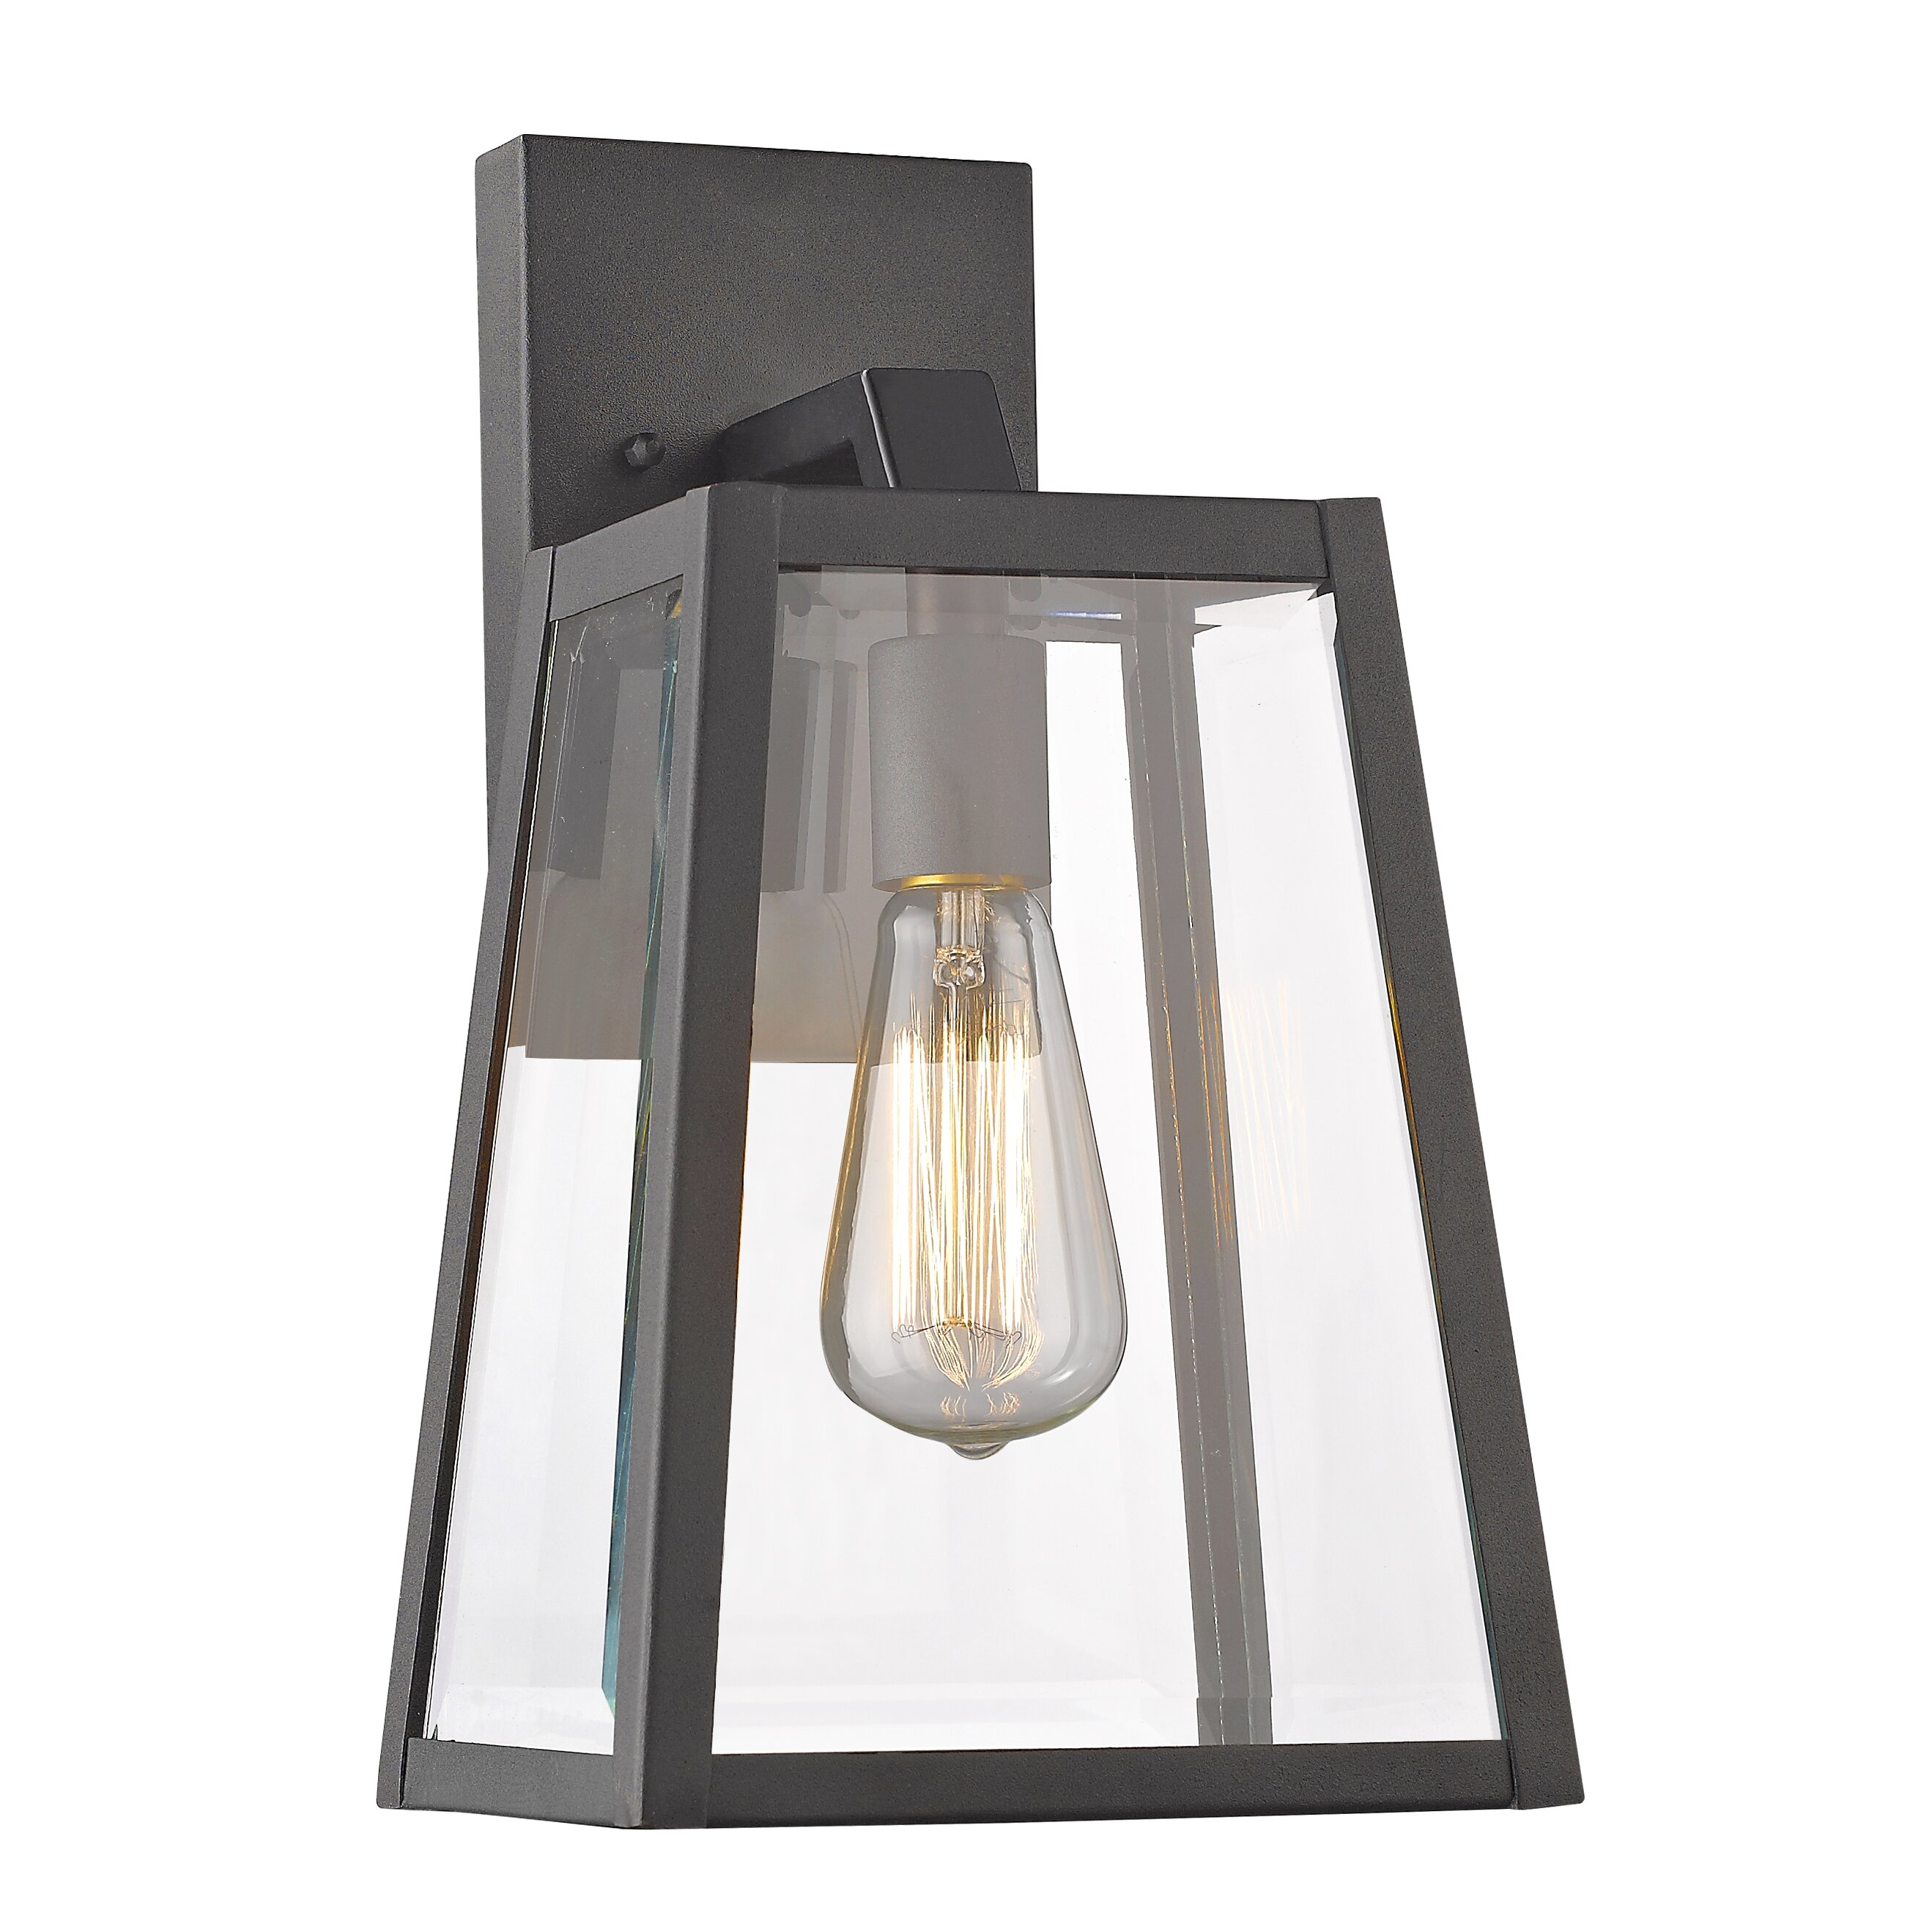 Chloe Lighting 1 Light Outdoor Wall Lantern & Reviews Wayfair